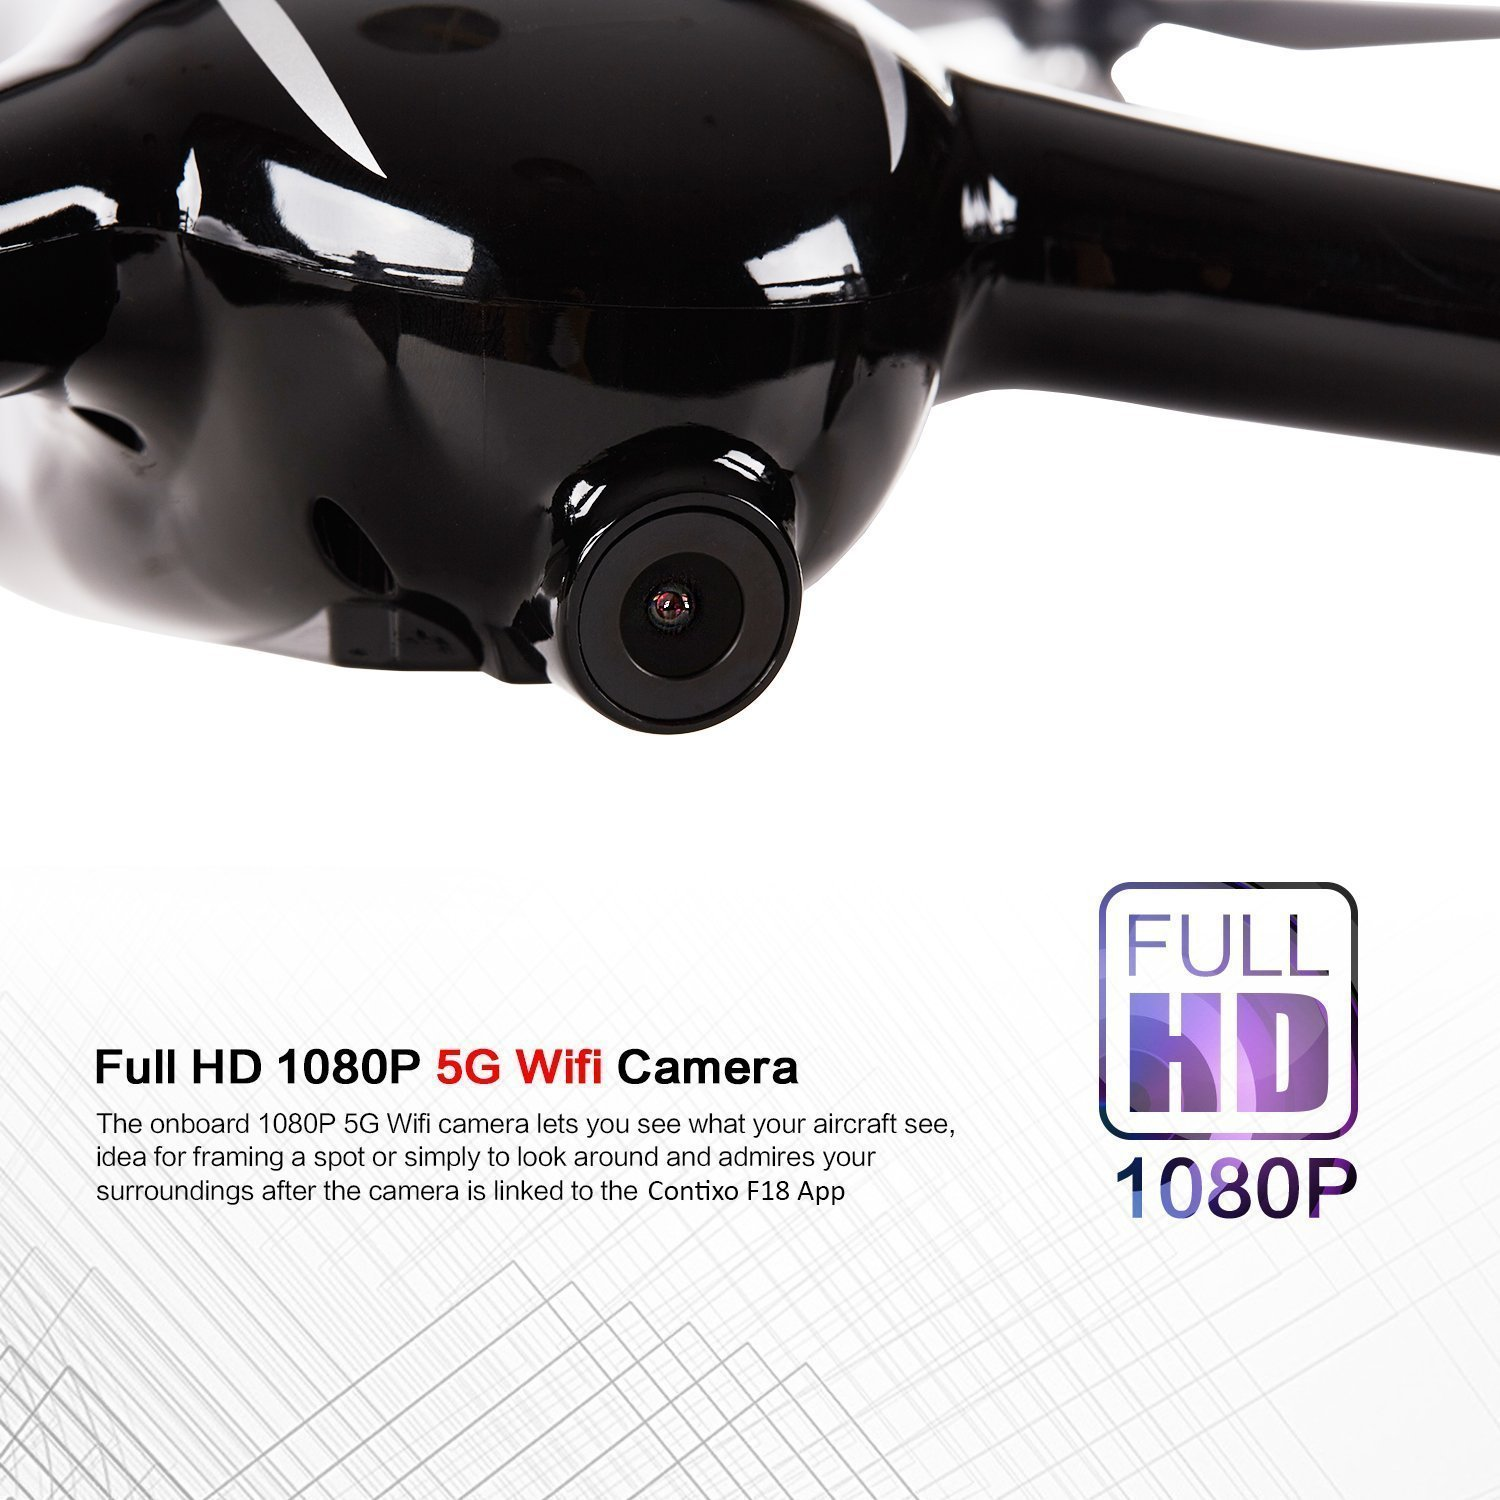 Holiday Special! Contixo F18 Advanced GPS Assisted RC Quadcopter 1080P HD Live FPV 5GHz Wifi Video Camera Drone Smart RTH Hovering Brushless Motors-Carrying Back Pack $50 Value Best Gift For Christmas by Contixo (Image #4)